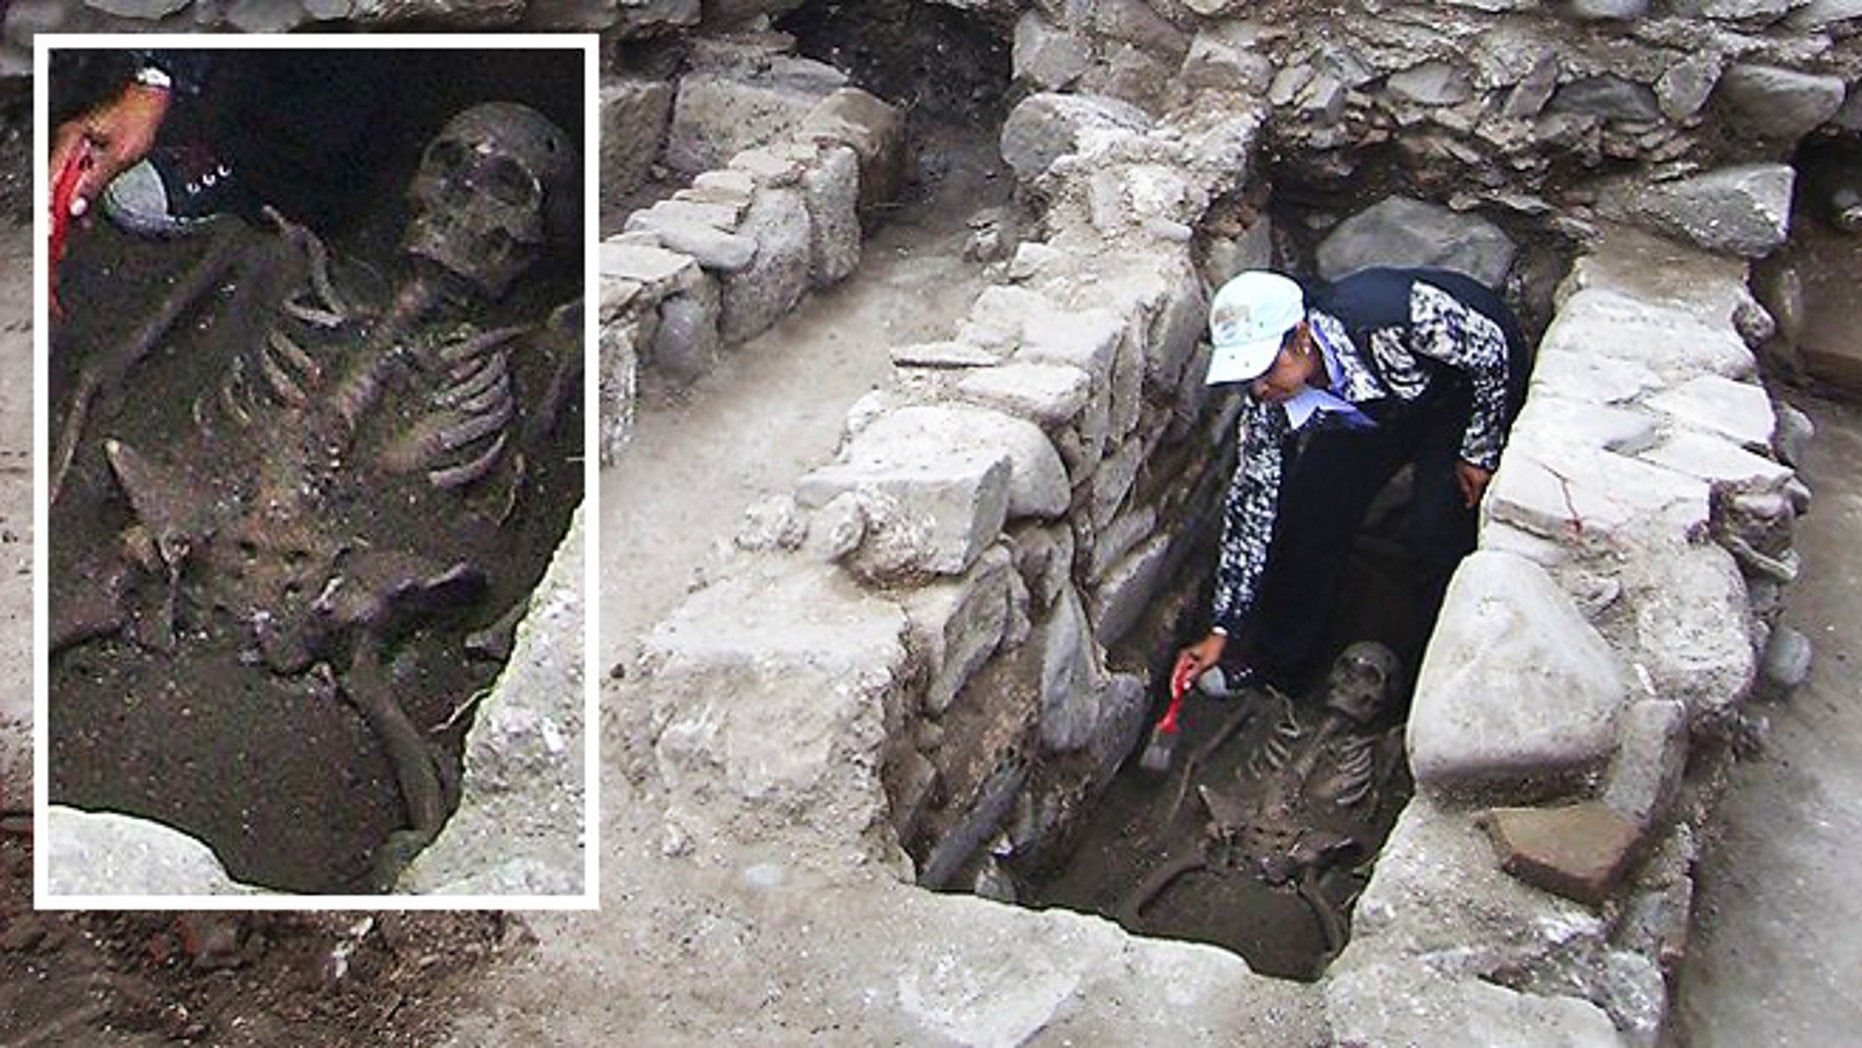 Restless dead: An archaeologist cleans a skeleton during excavations in Bulgaria, where the remains of two bodies were found pierced with iron rods to keep them from turning into vampires.